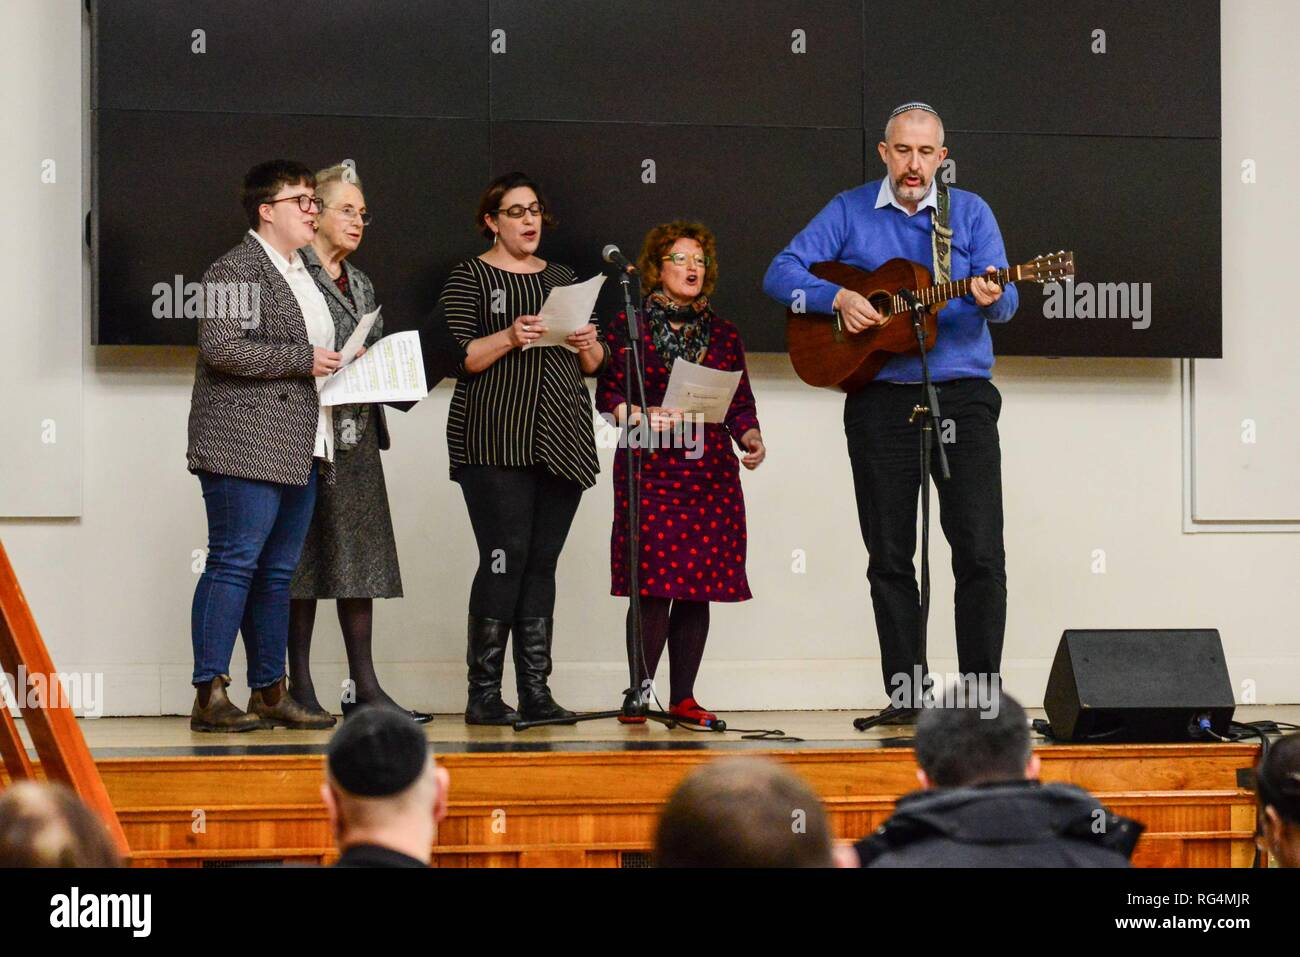 "London,UK. 27th Jan 2019.  Members of the choir of South London Liberal Synagogue perform at Holocaust Memorial Day ceremony in Lambeth Assembly Hall.. The theme for 2019 set by the Holocaust Memorial Day Trust is ""Torn from Home"".   Credit: Claire Doherty/Alamy Live News - Stock Image"